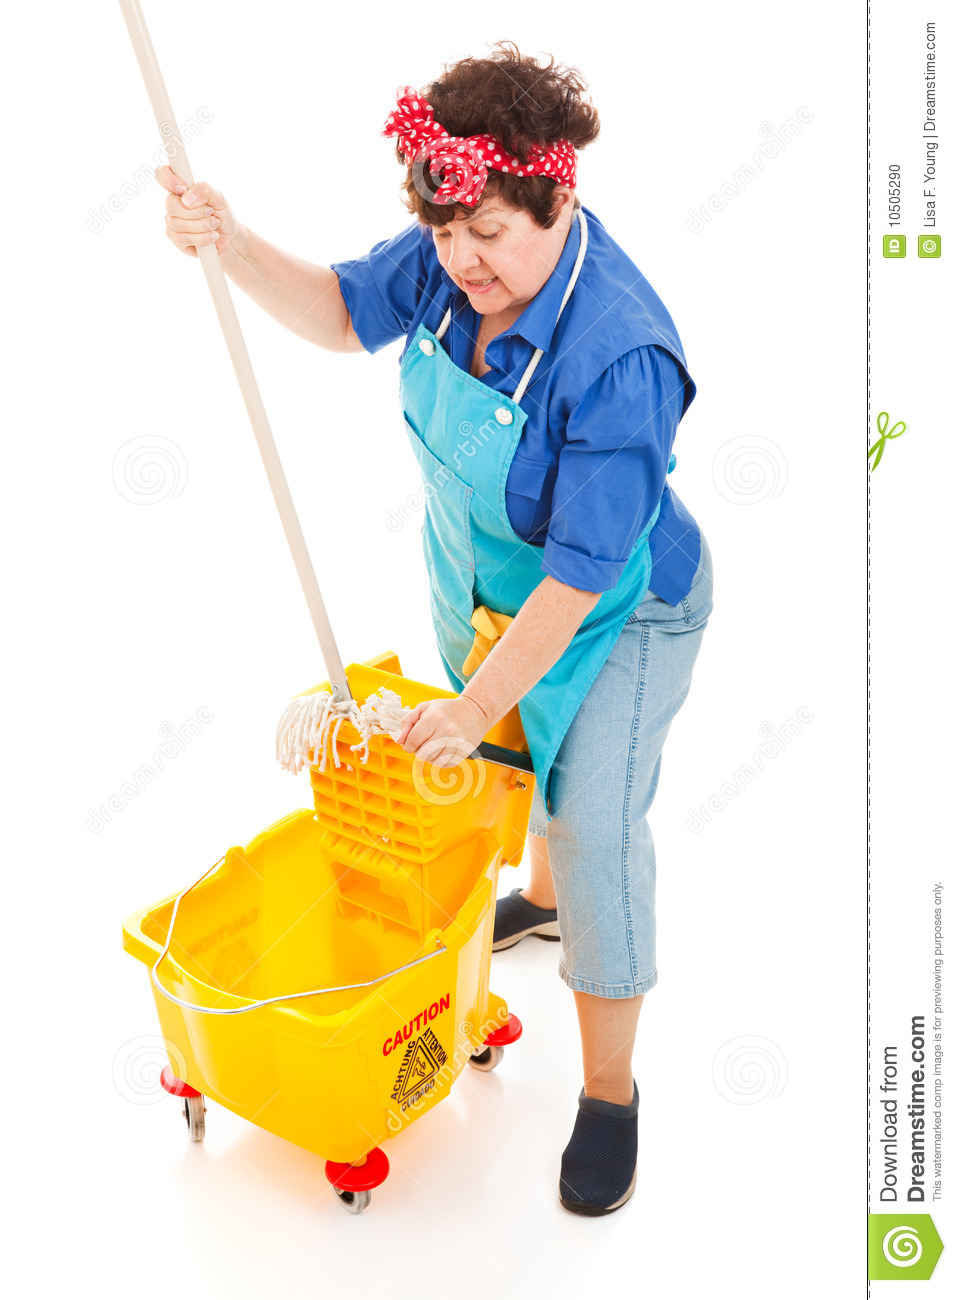 Cleaning Lady Wrings Mop Stock Photo Image 10505290